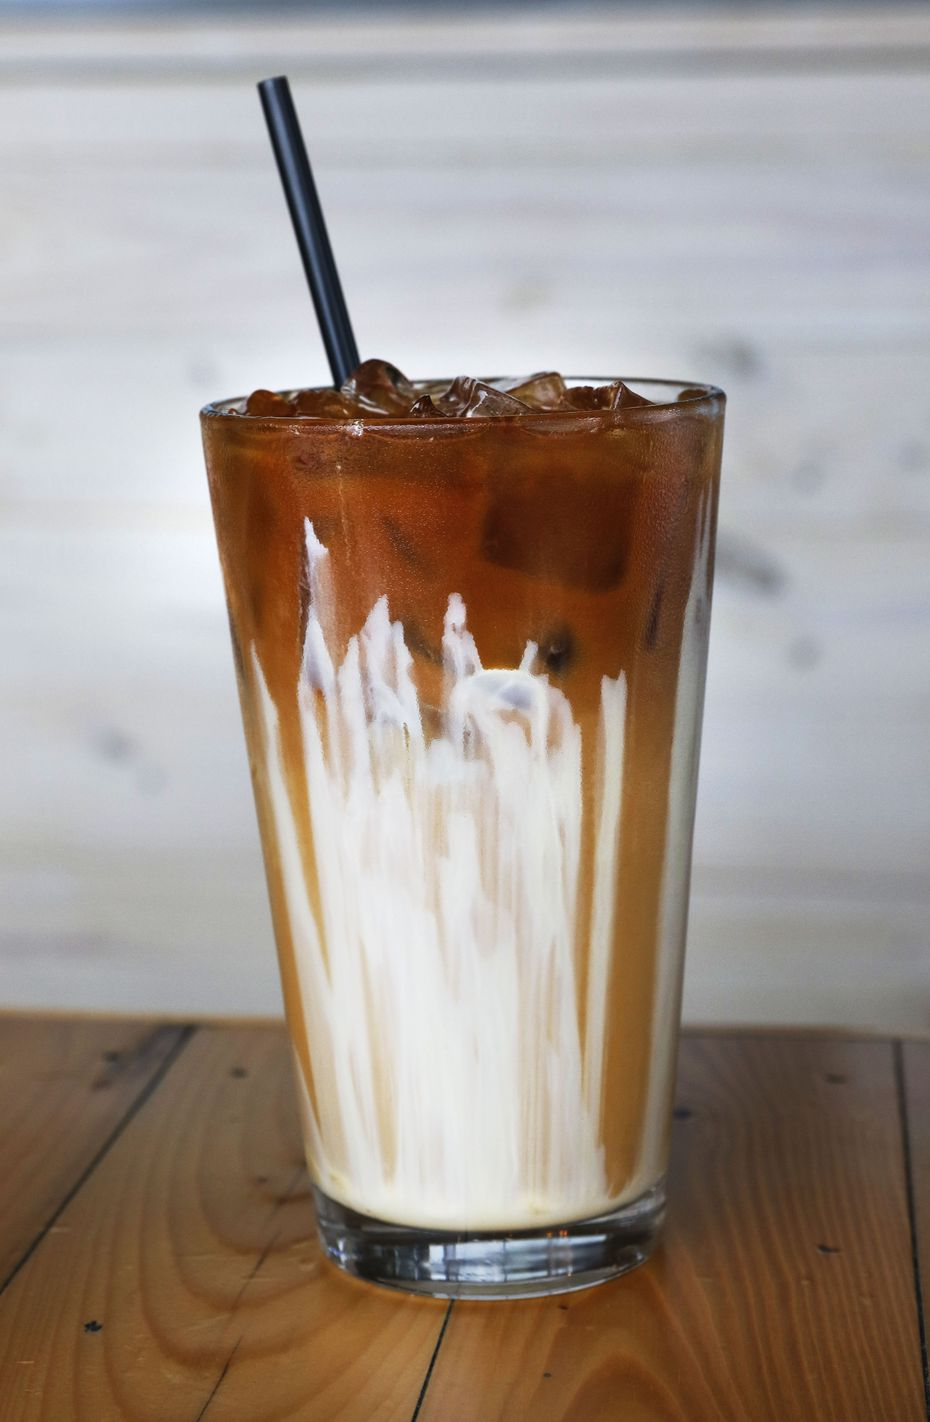 This glass of Vietnamese iced coffee at Toasted Coffee + Kitchen was photographed in 2017.